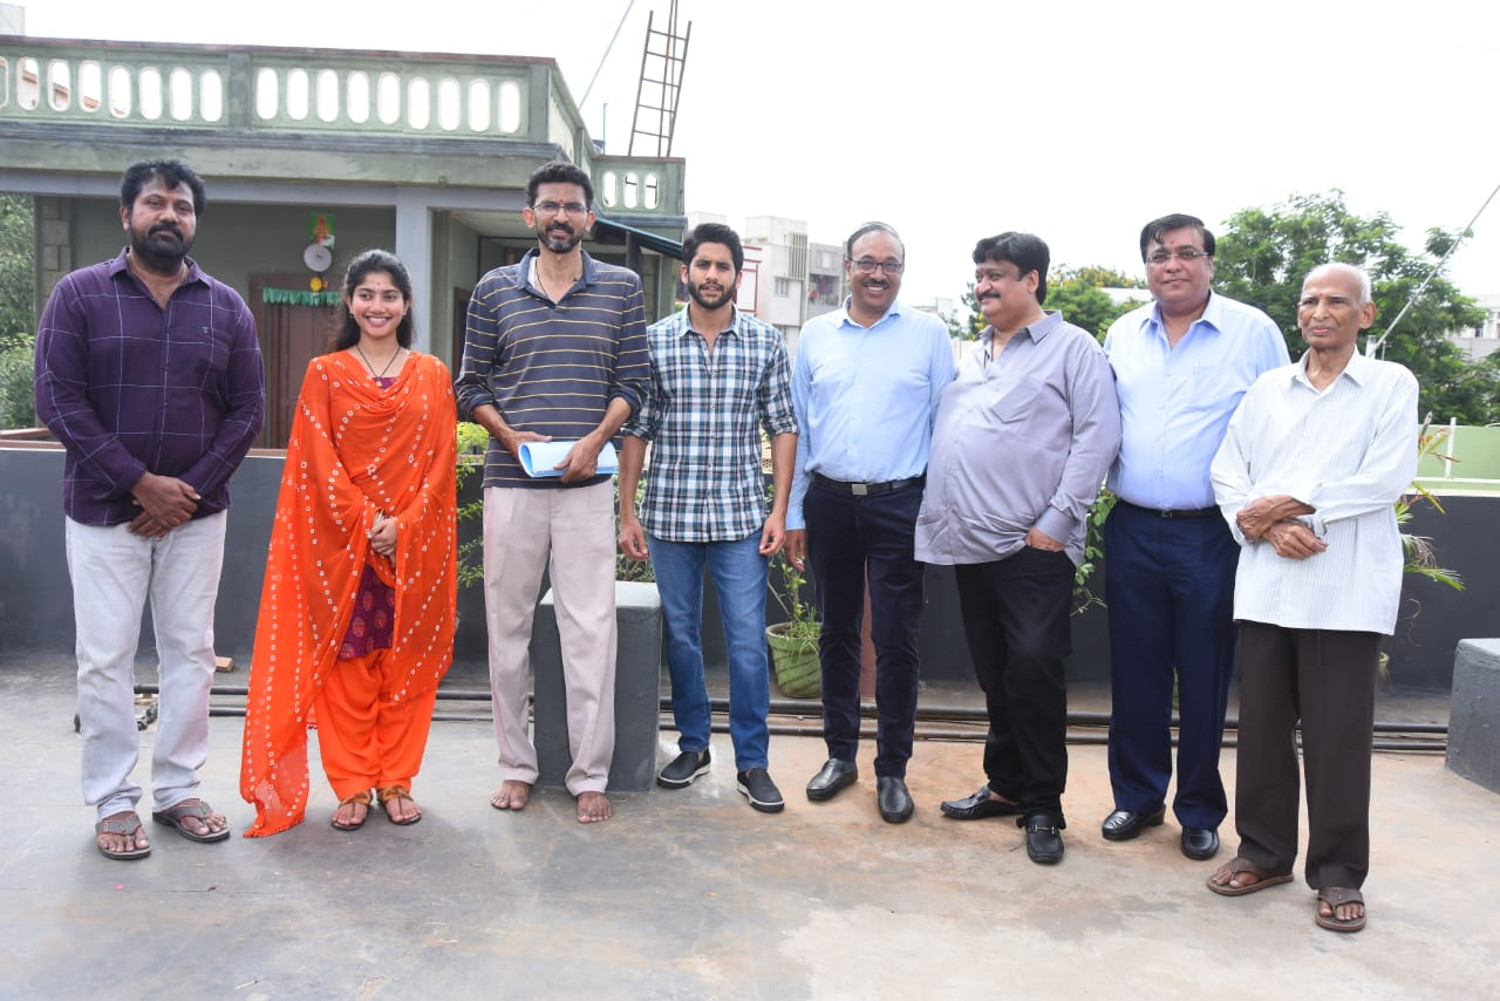 Sekhar Kammula Naga Chaitanya Sai Pallavi Movie Shooting Started